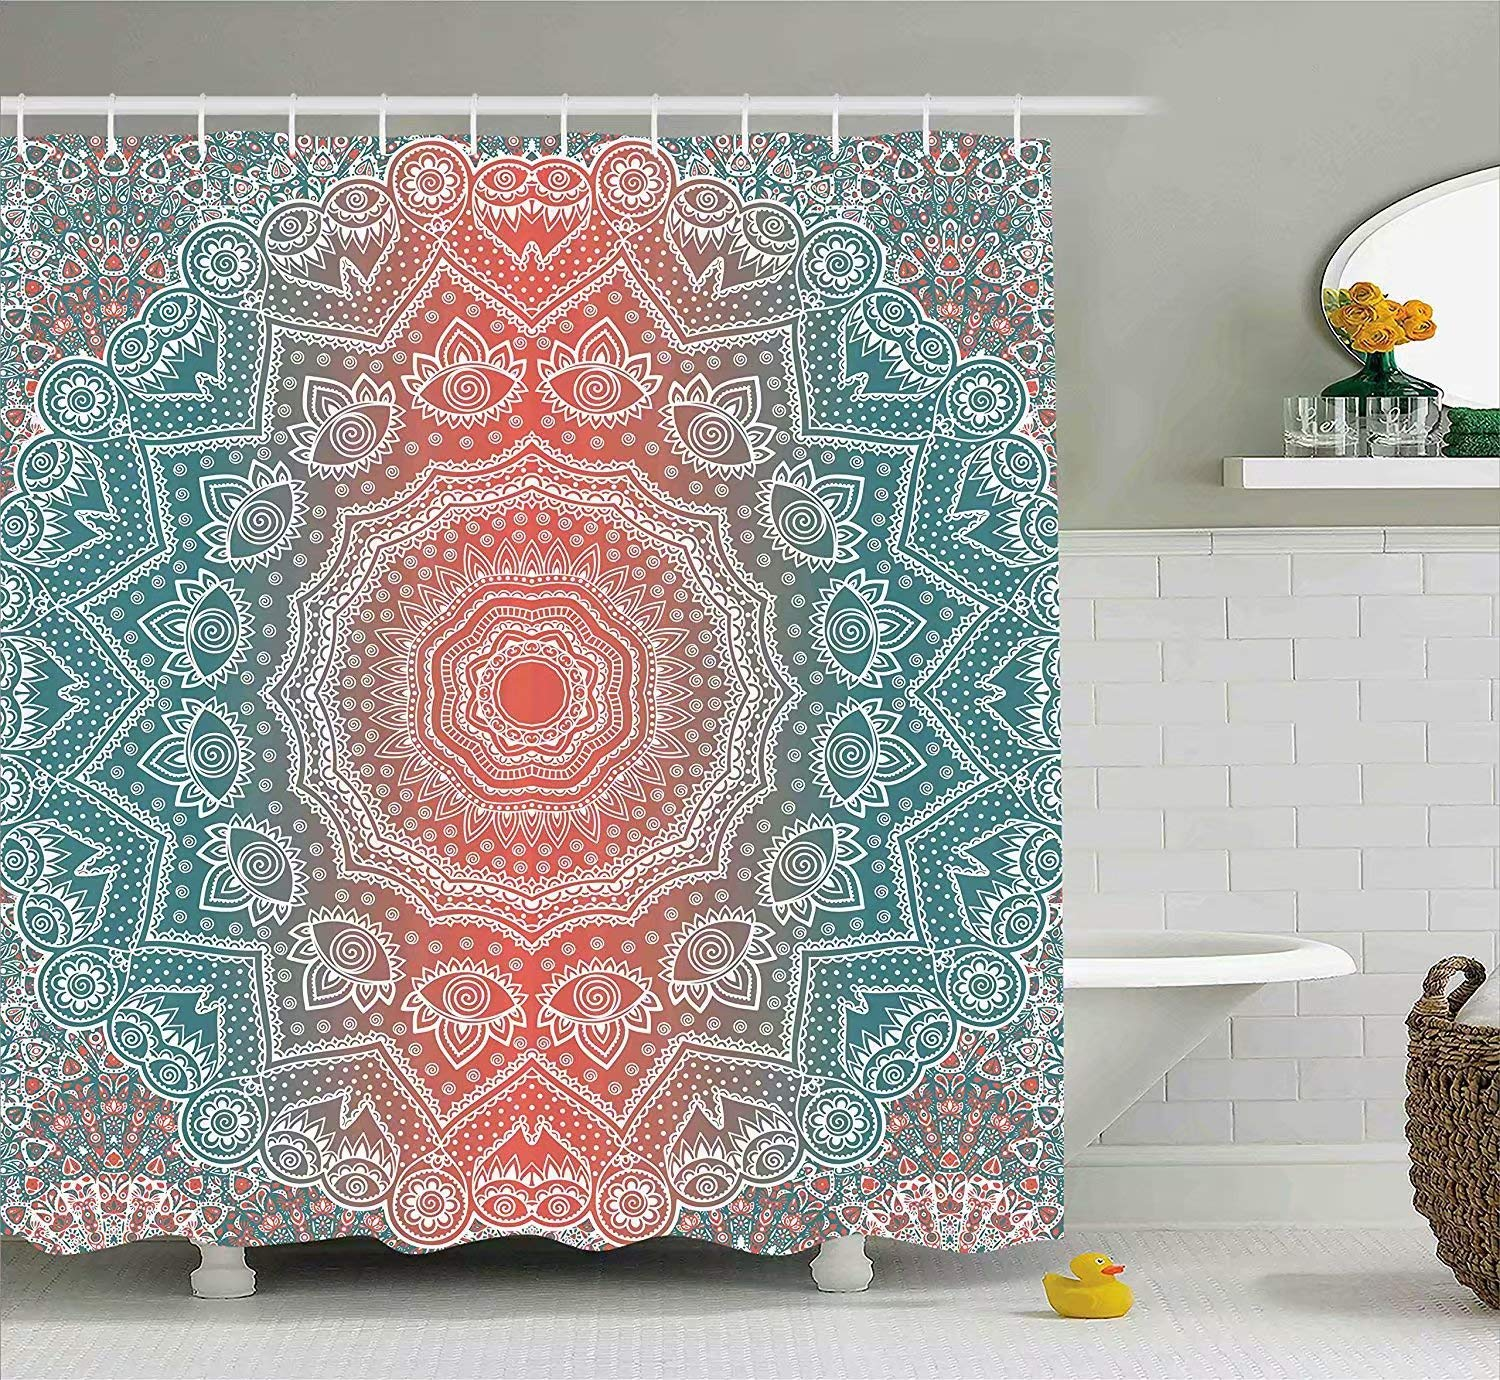 KANATSIU Tribal Mandala Tibetan Healing Motif with Floral Geometric Ombre Art Shower Curtain,with 12 plactic hooks,100% Made of Polyester,Mildew Resistant & Machine Washable,Width x Height is 72X72